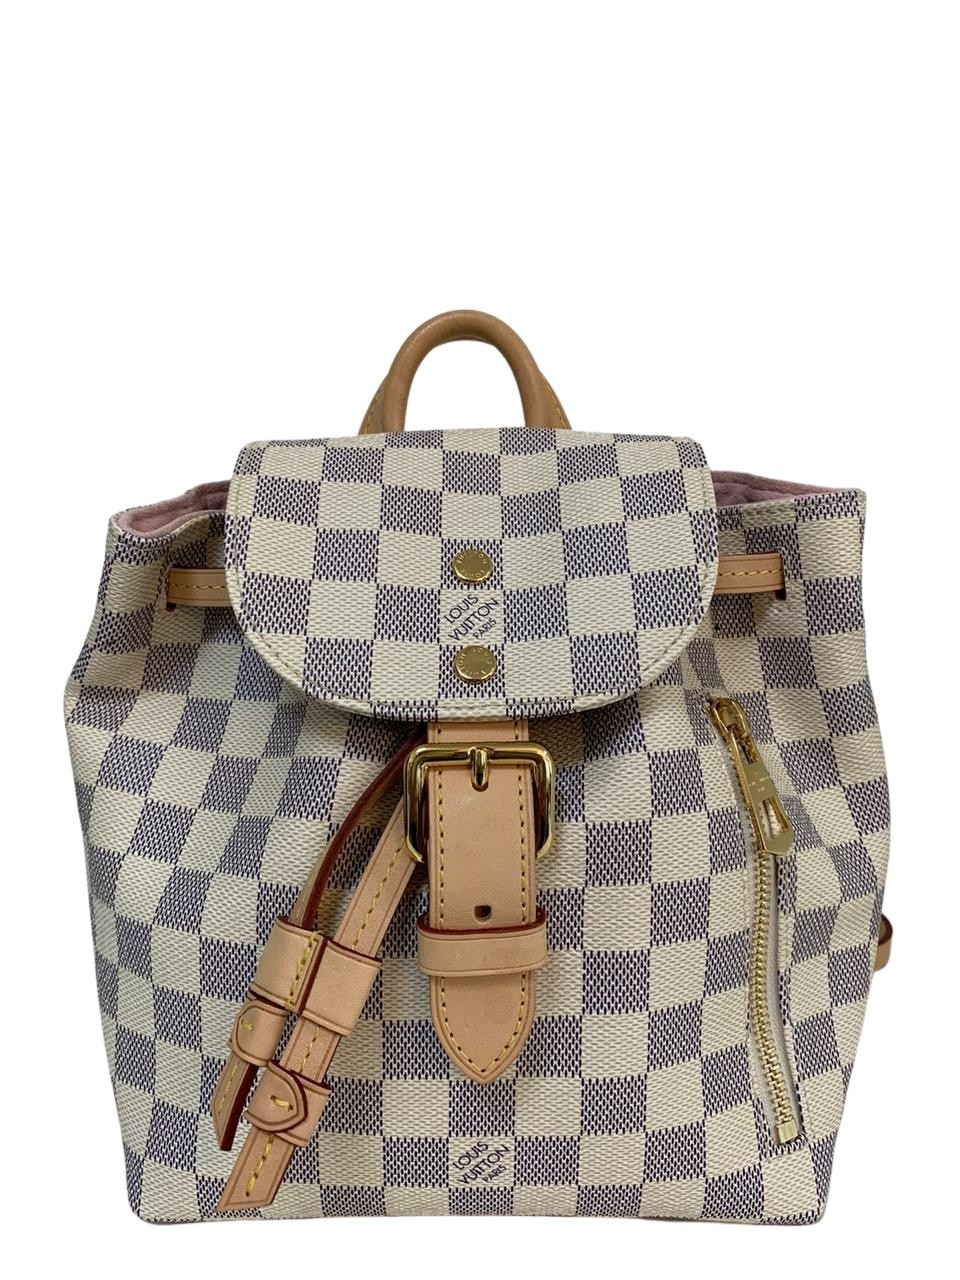 Mochila Louis Vuitton Damier Azur Sperone